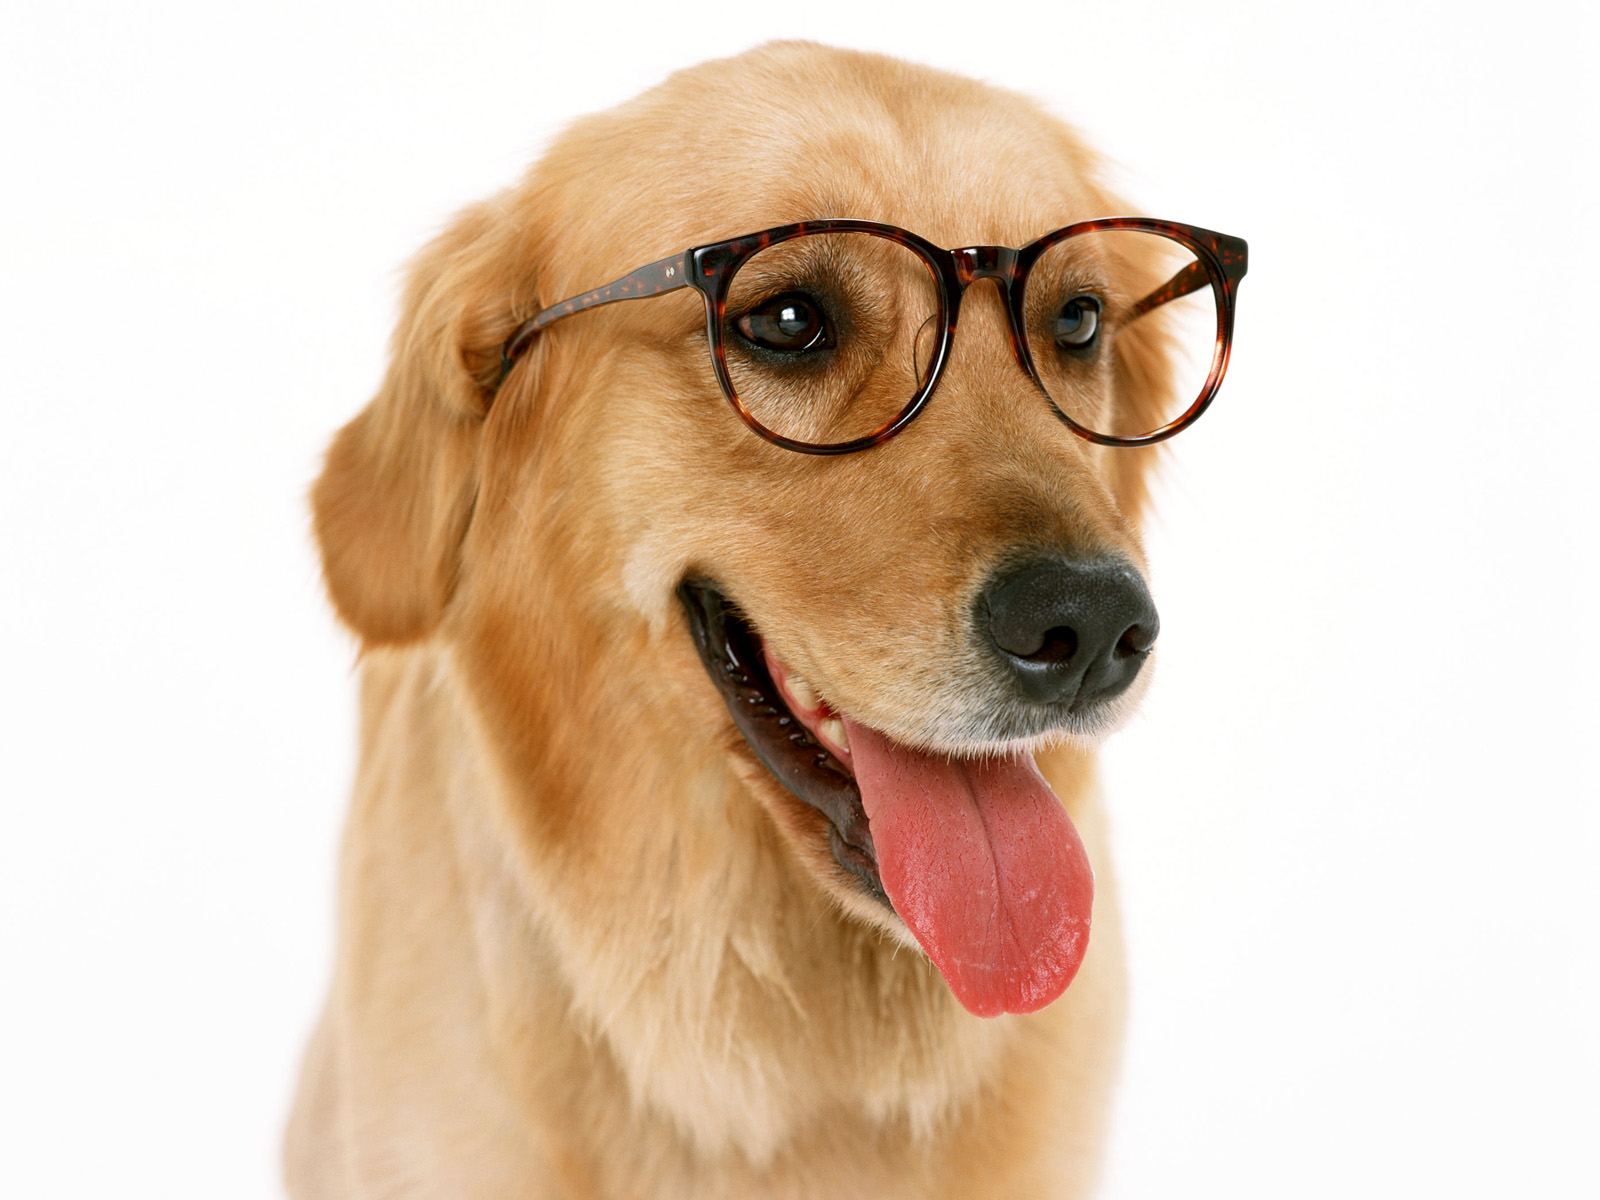 Labrador Dog Wearing Glasses